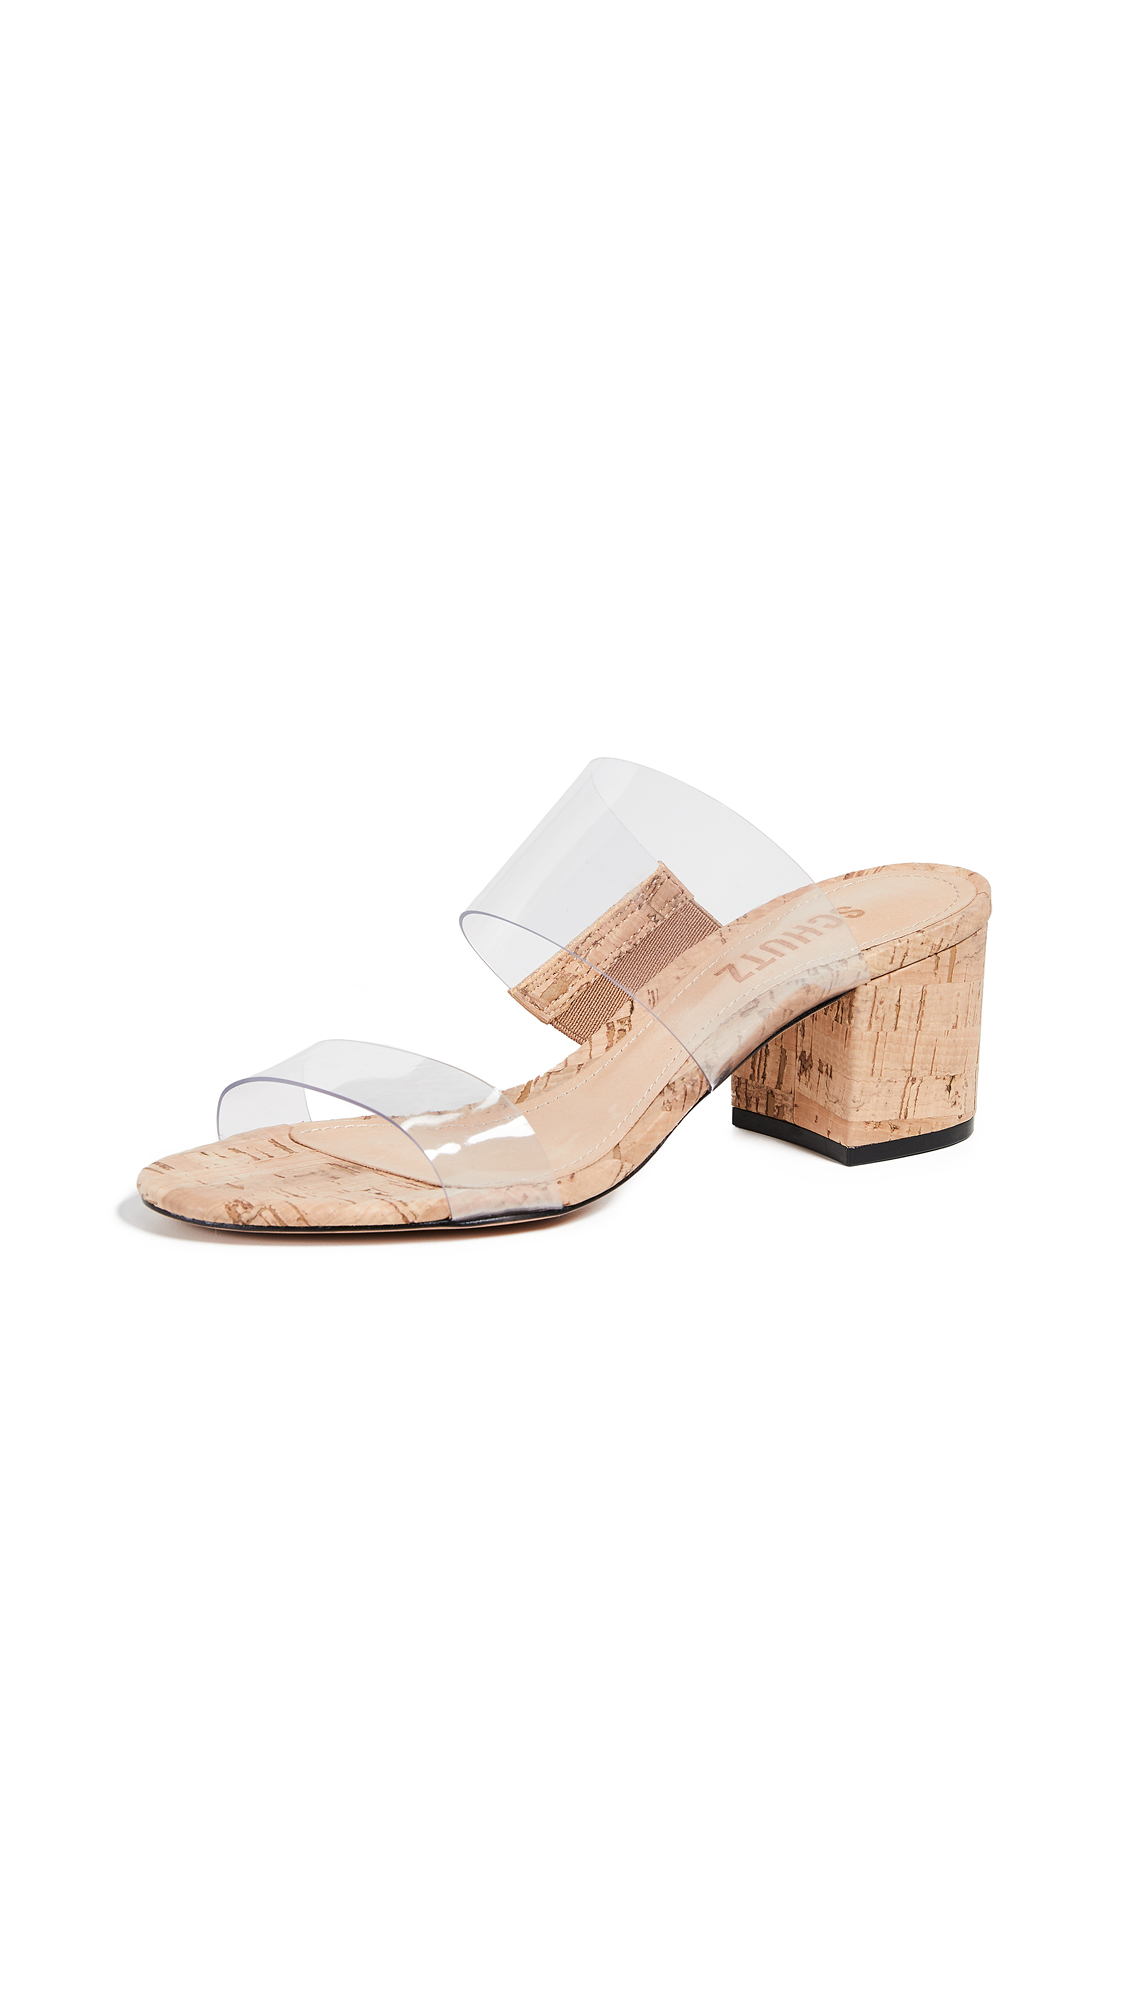 Victorie Double Strap Vinyl Sandals in Transparent from SCHUTZ-SHOES